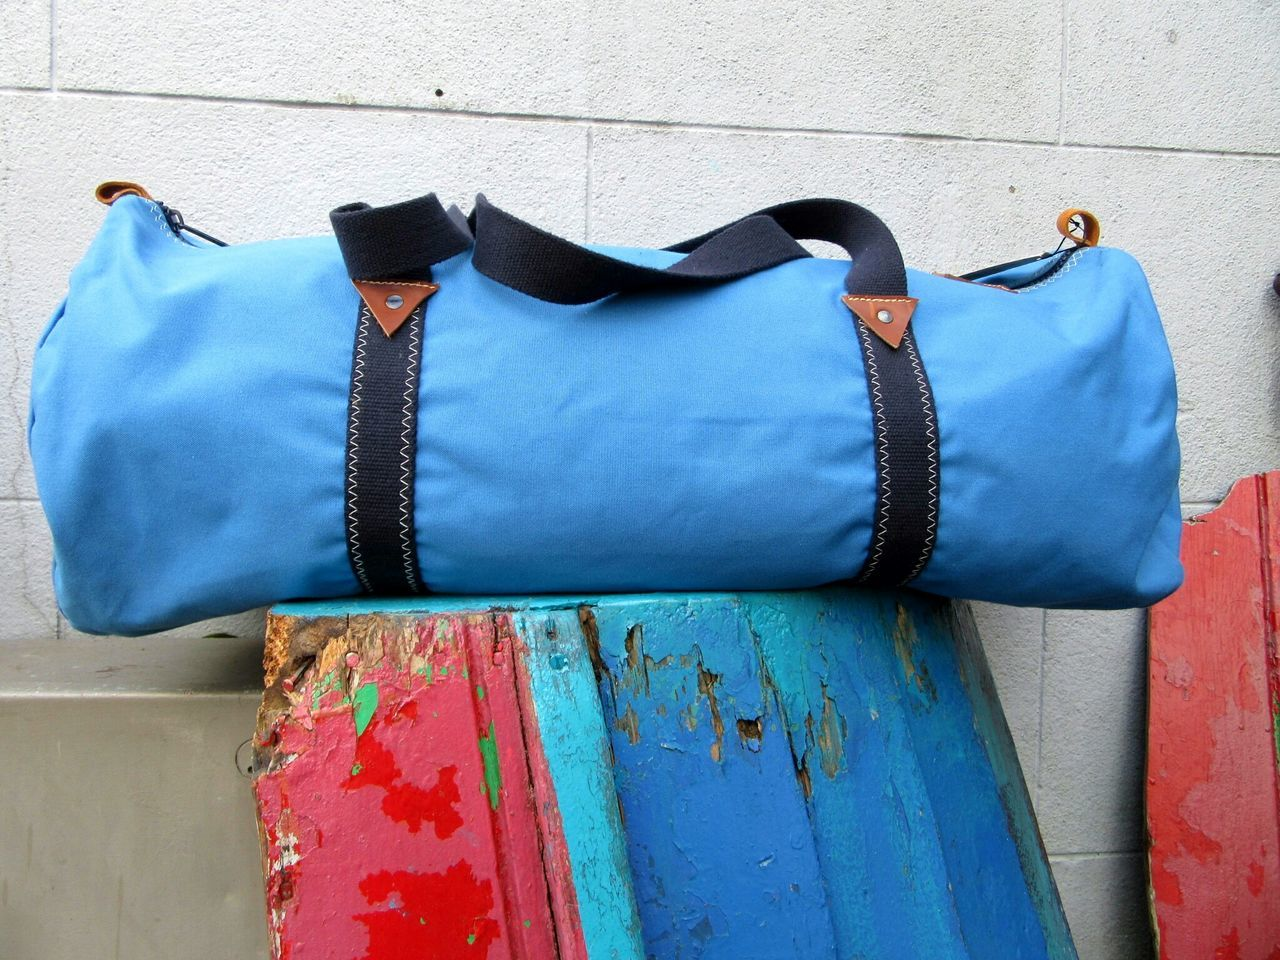 Bag Baggage Sailcloth Sailcloth Bags Outdoors Variation Blue High Angle View Multi Colored Arrangement No People TakeoverContrast Kinsale West Cork Wildatlanticway Ireland